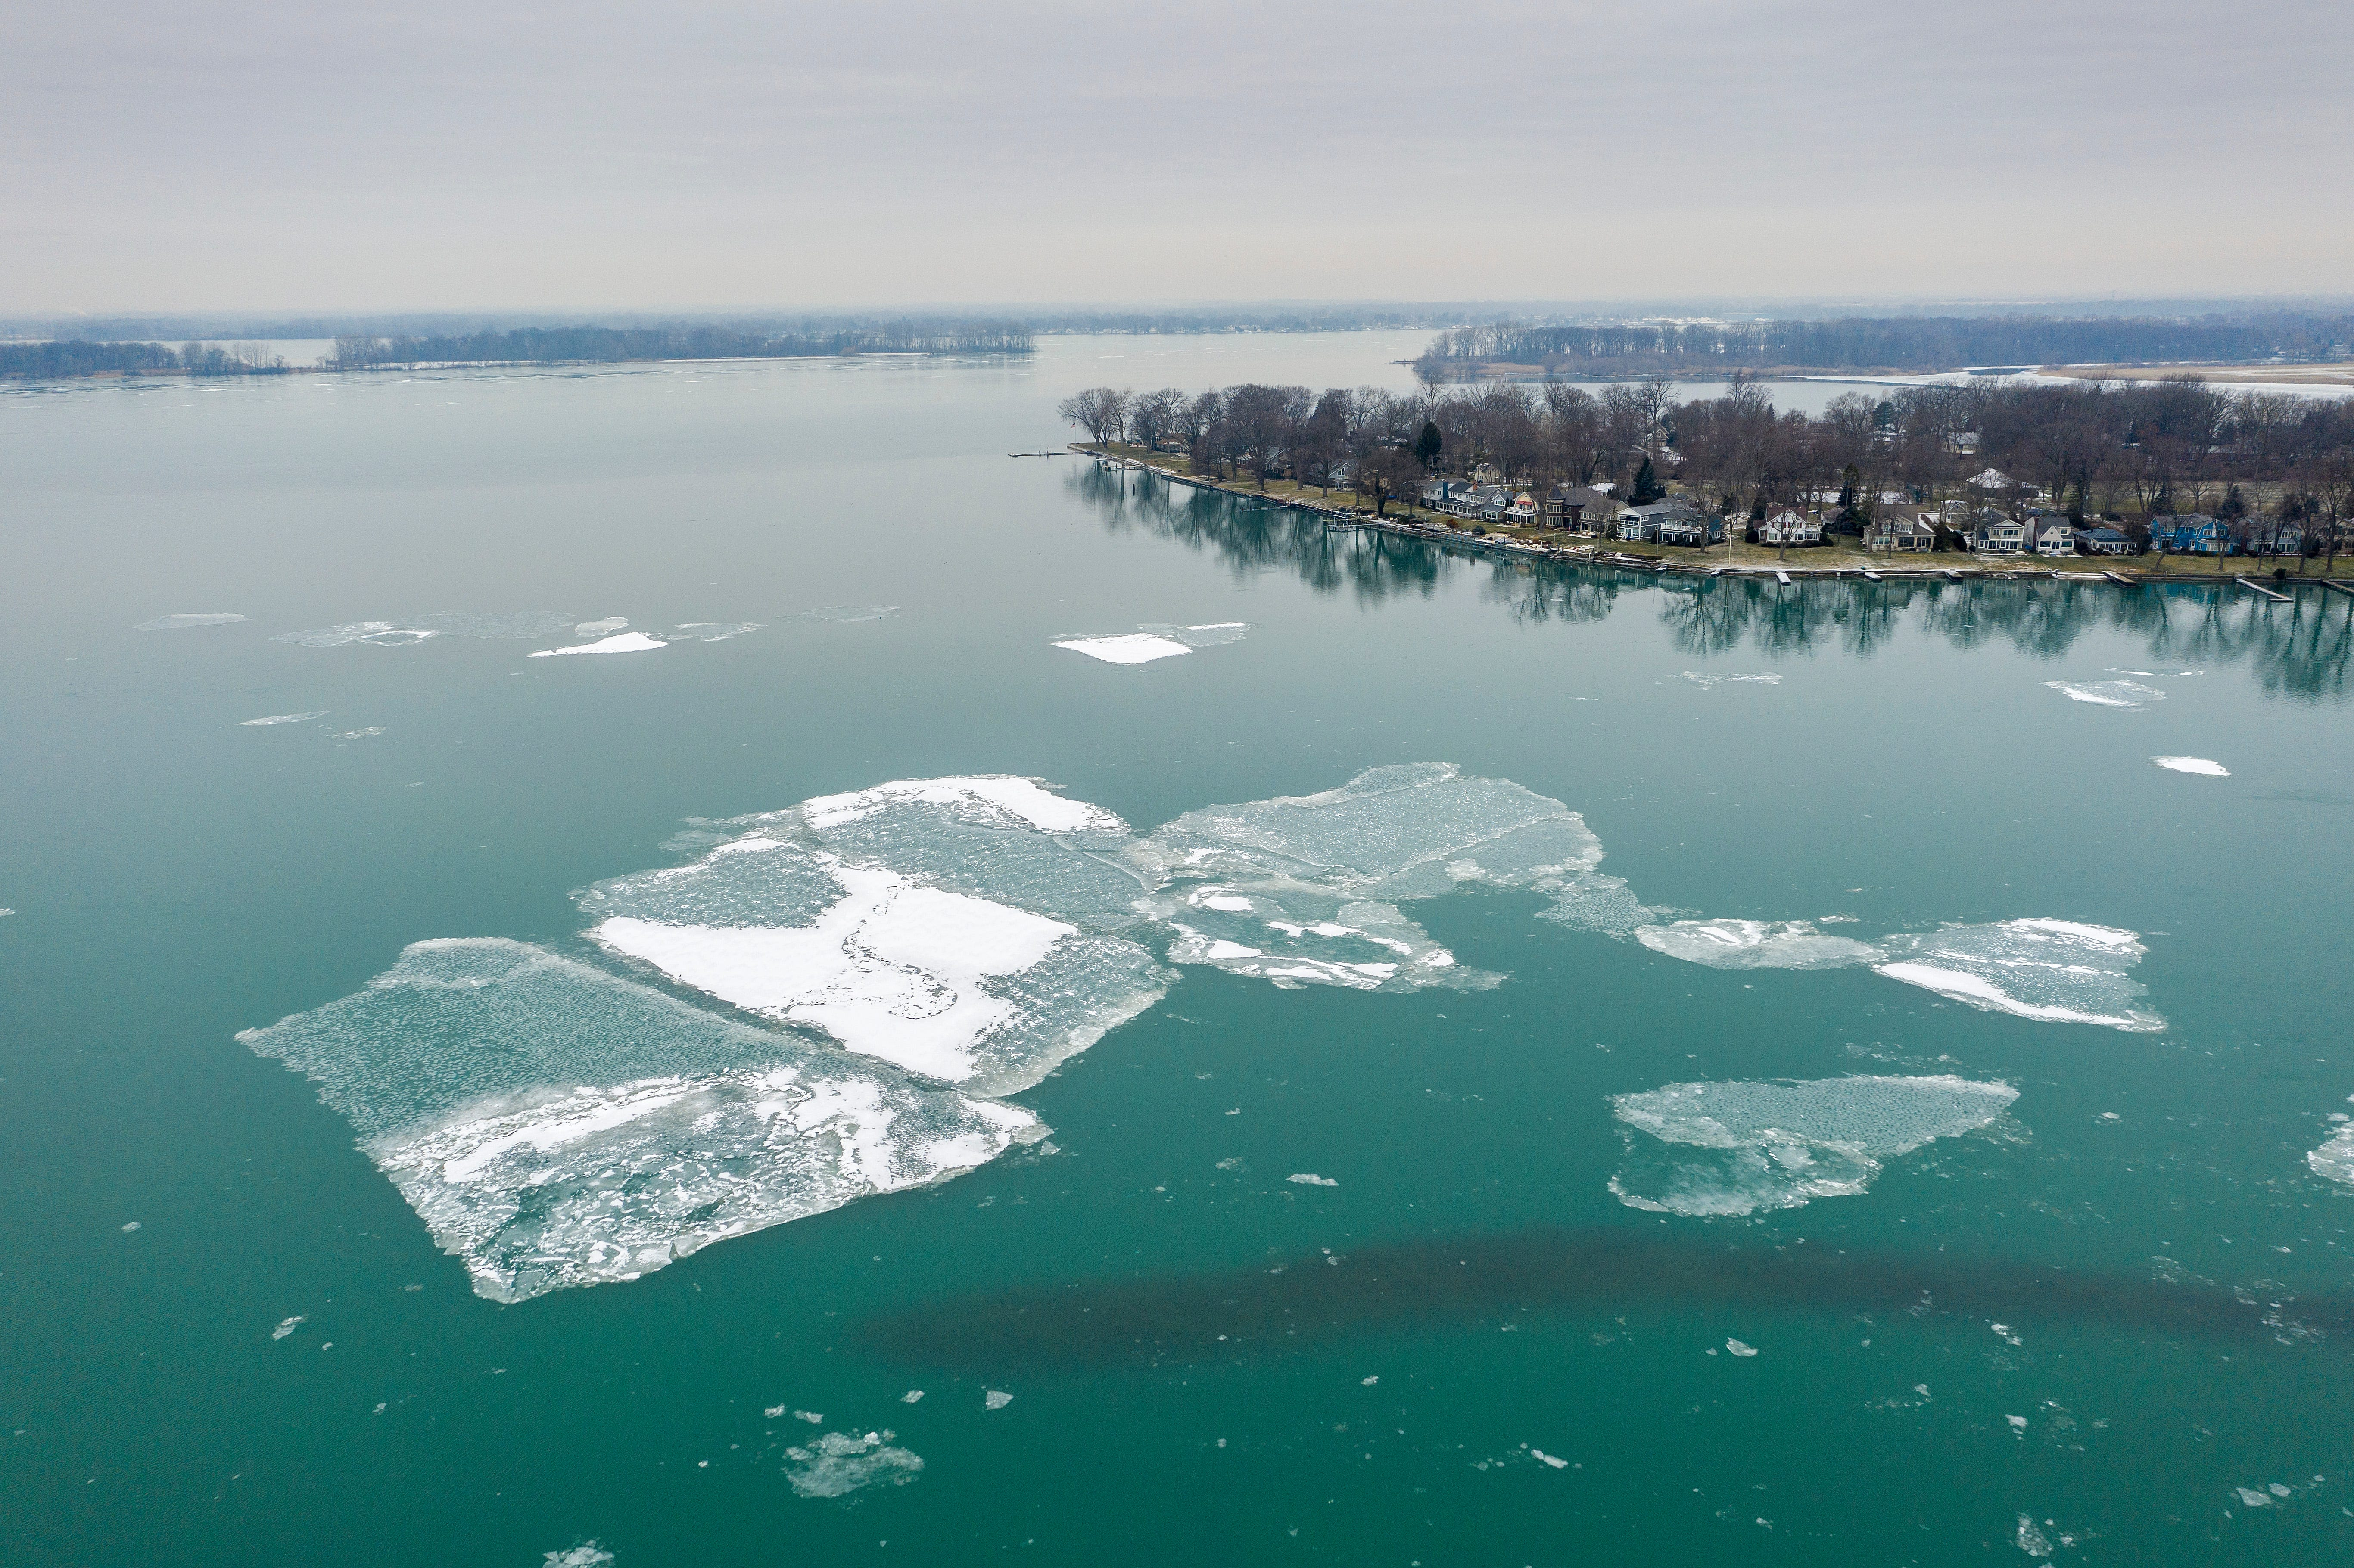 10 rescued after being stranded on ice floes in Lake Erie 2